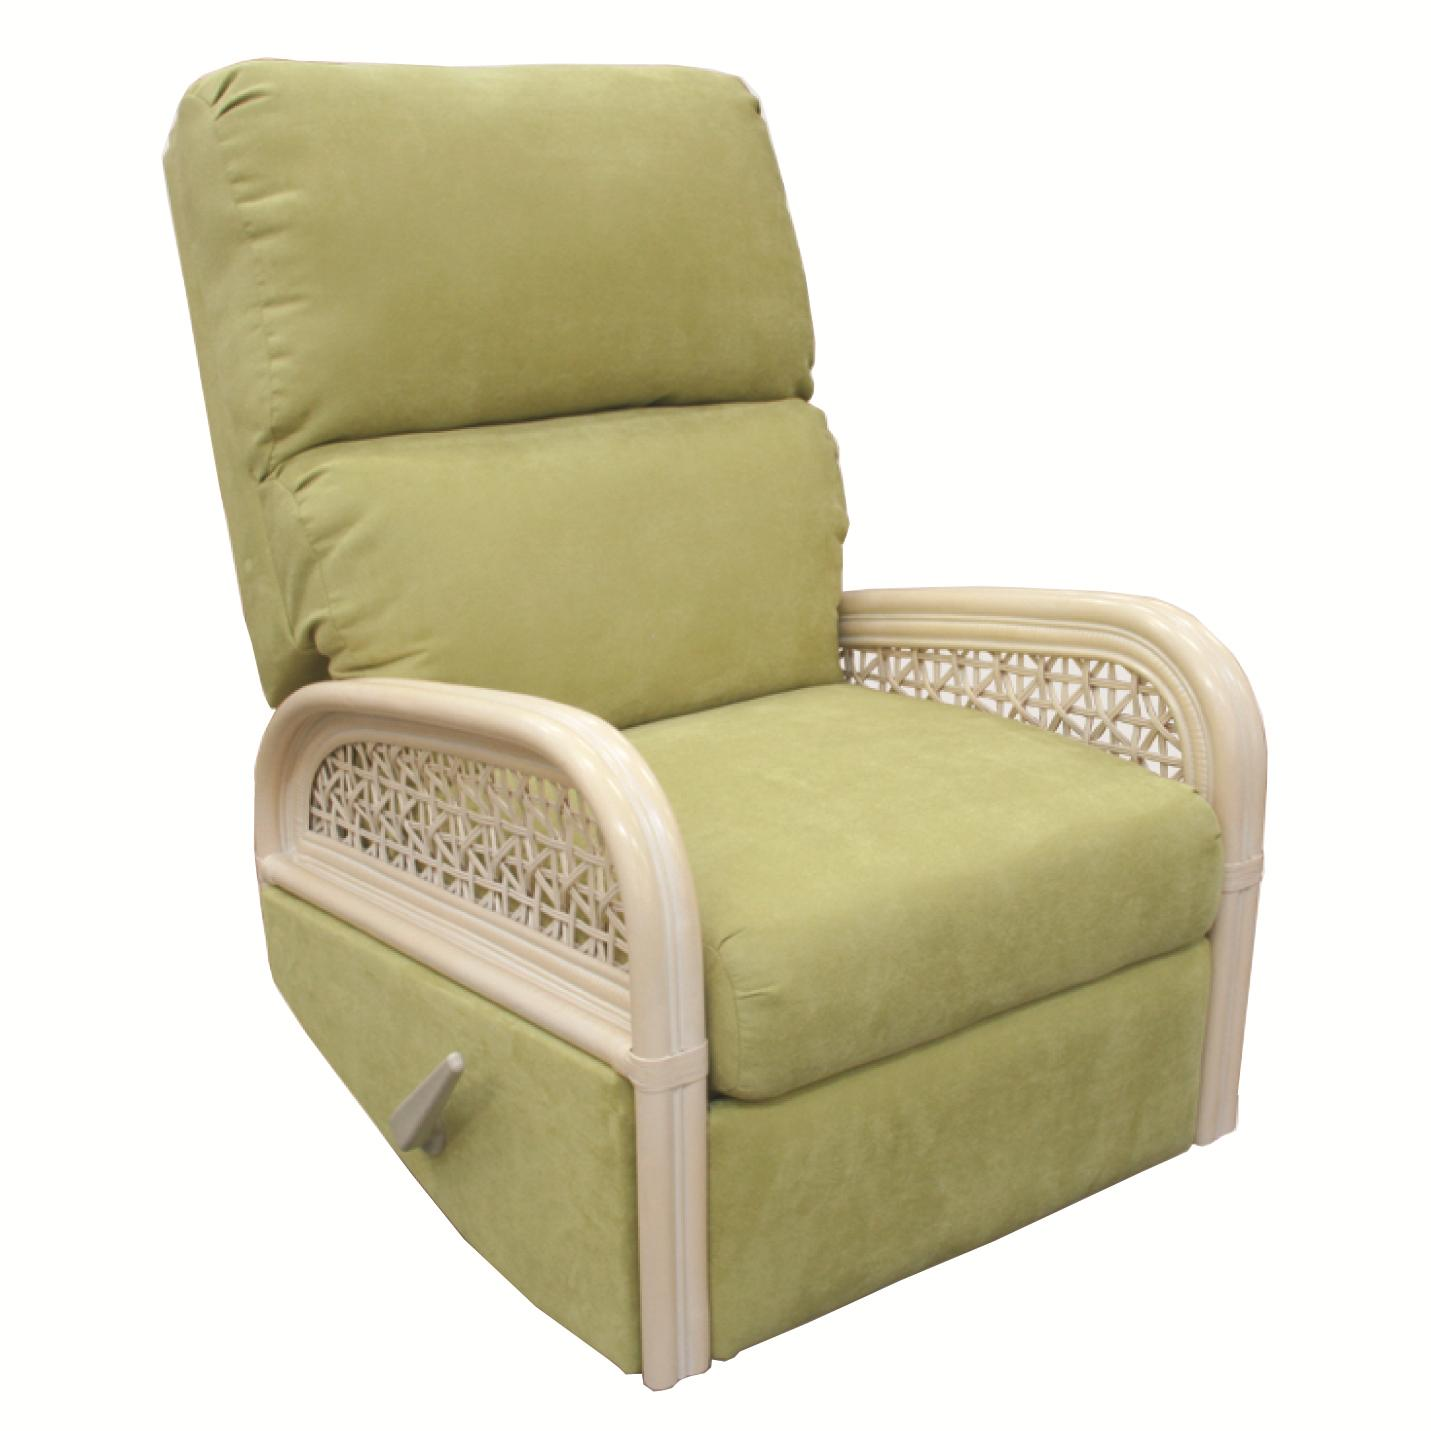 341 Collection Rocking Glider Recliner by Capris Furniture at Esprit Decor Home Furnishings